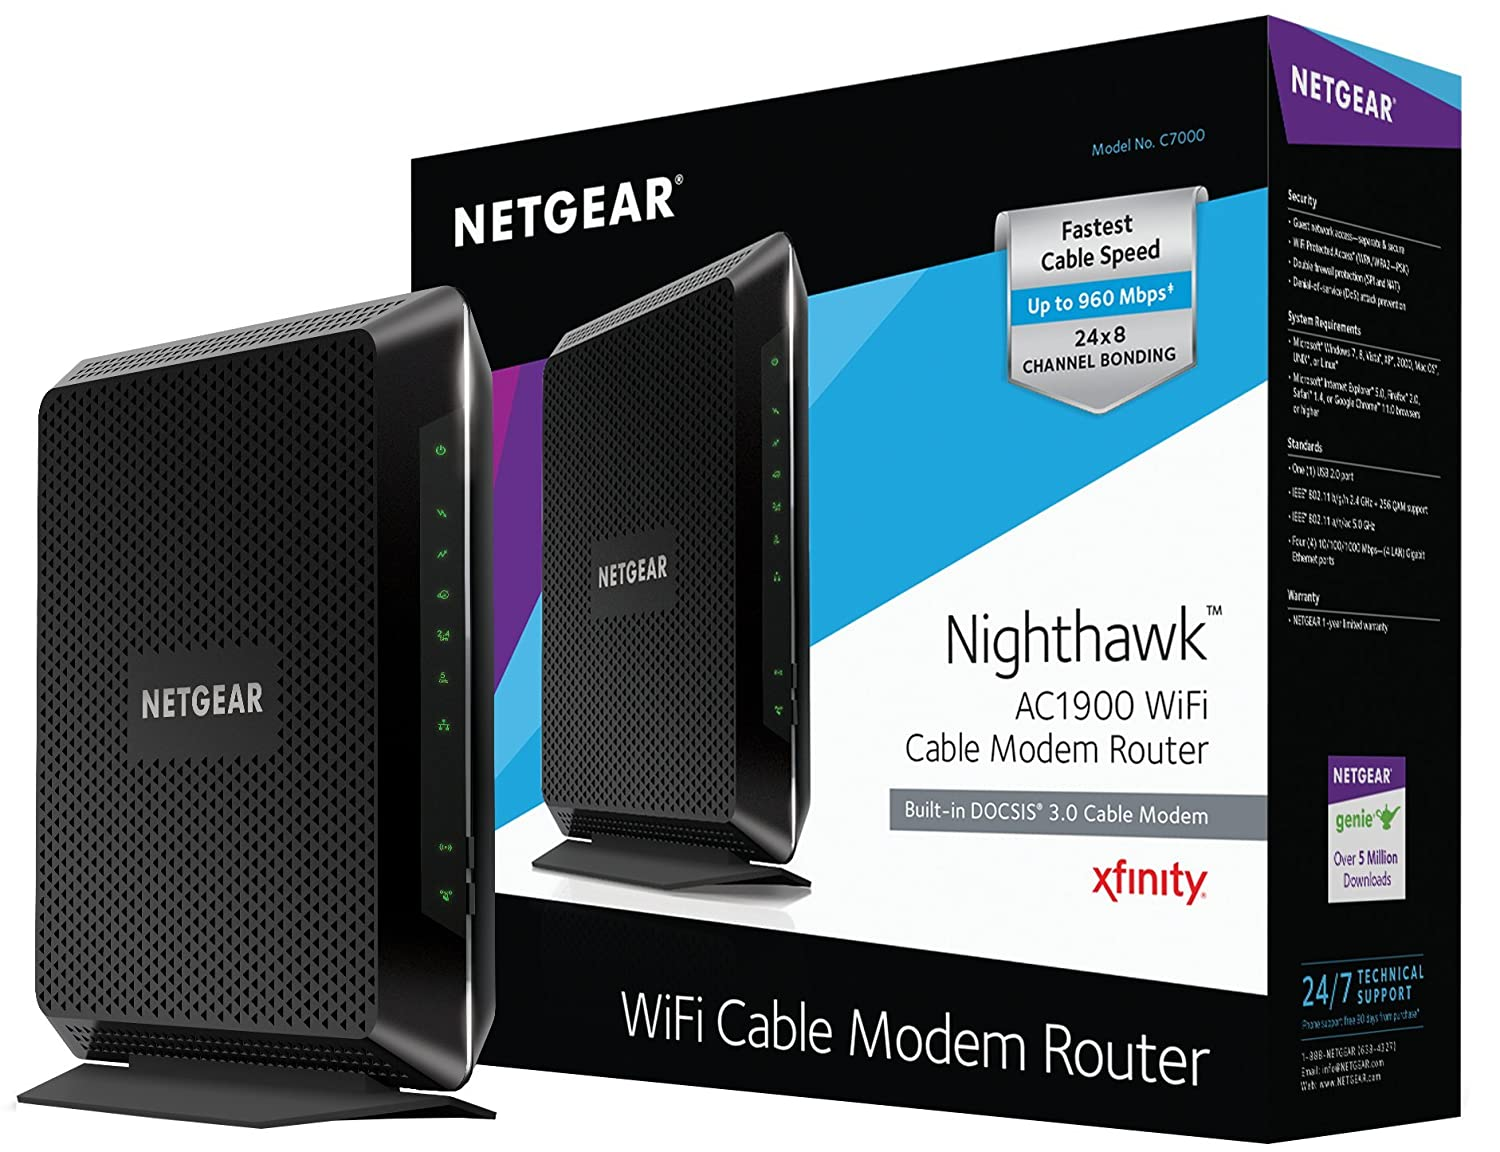 NETGEAR Nighthawk AC1900 (24x8) Wi-Fi Cable Modem Router (C7000) DOCSIS 3.0 Certified for Xfinity Comcast, Time Warner Cable, Cox, & more